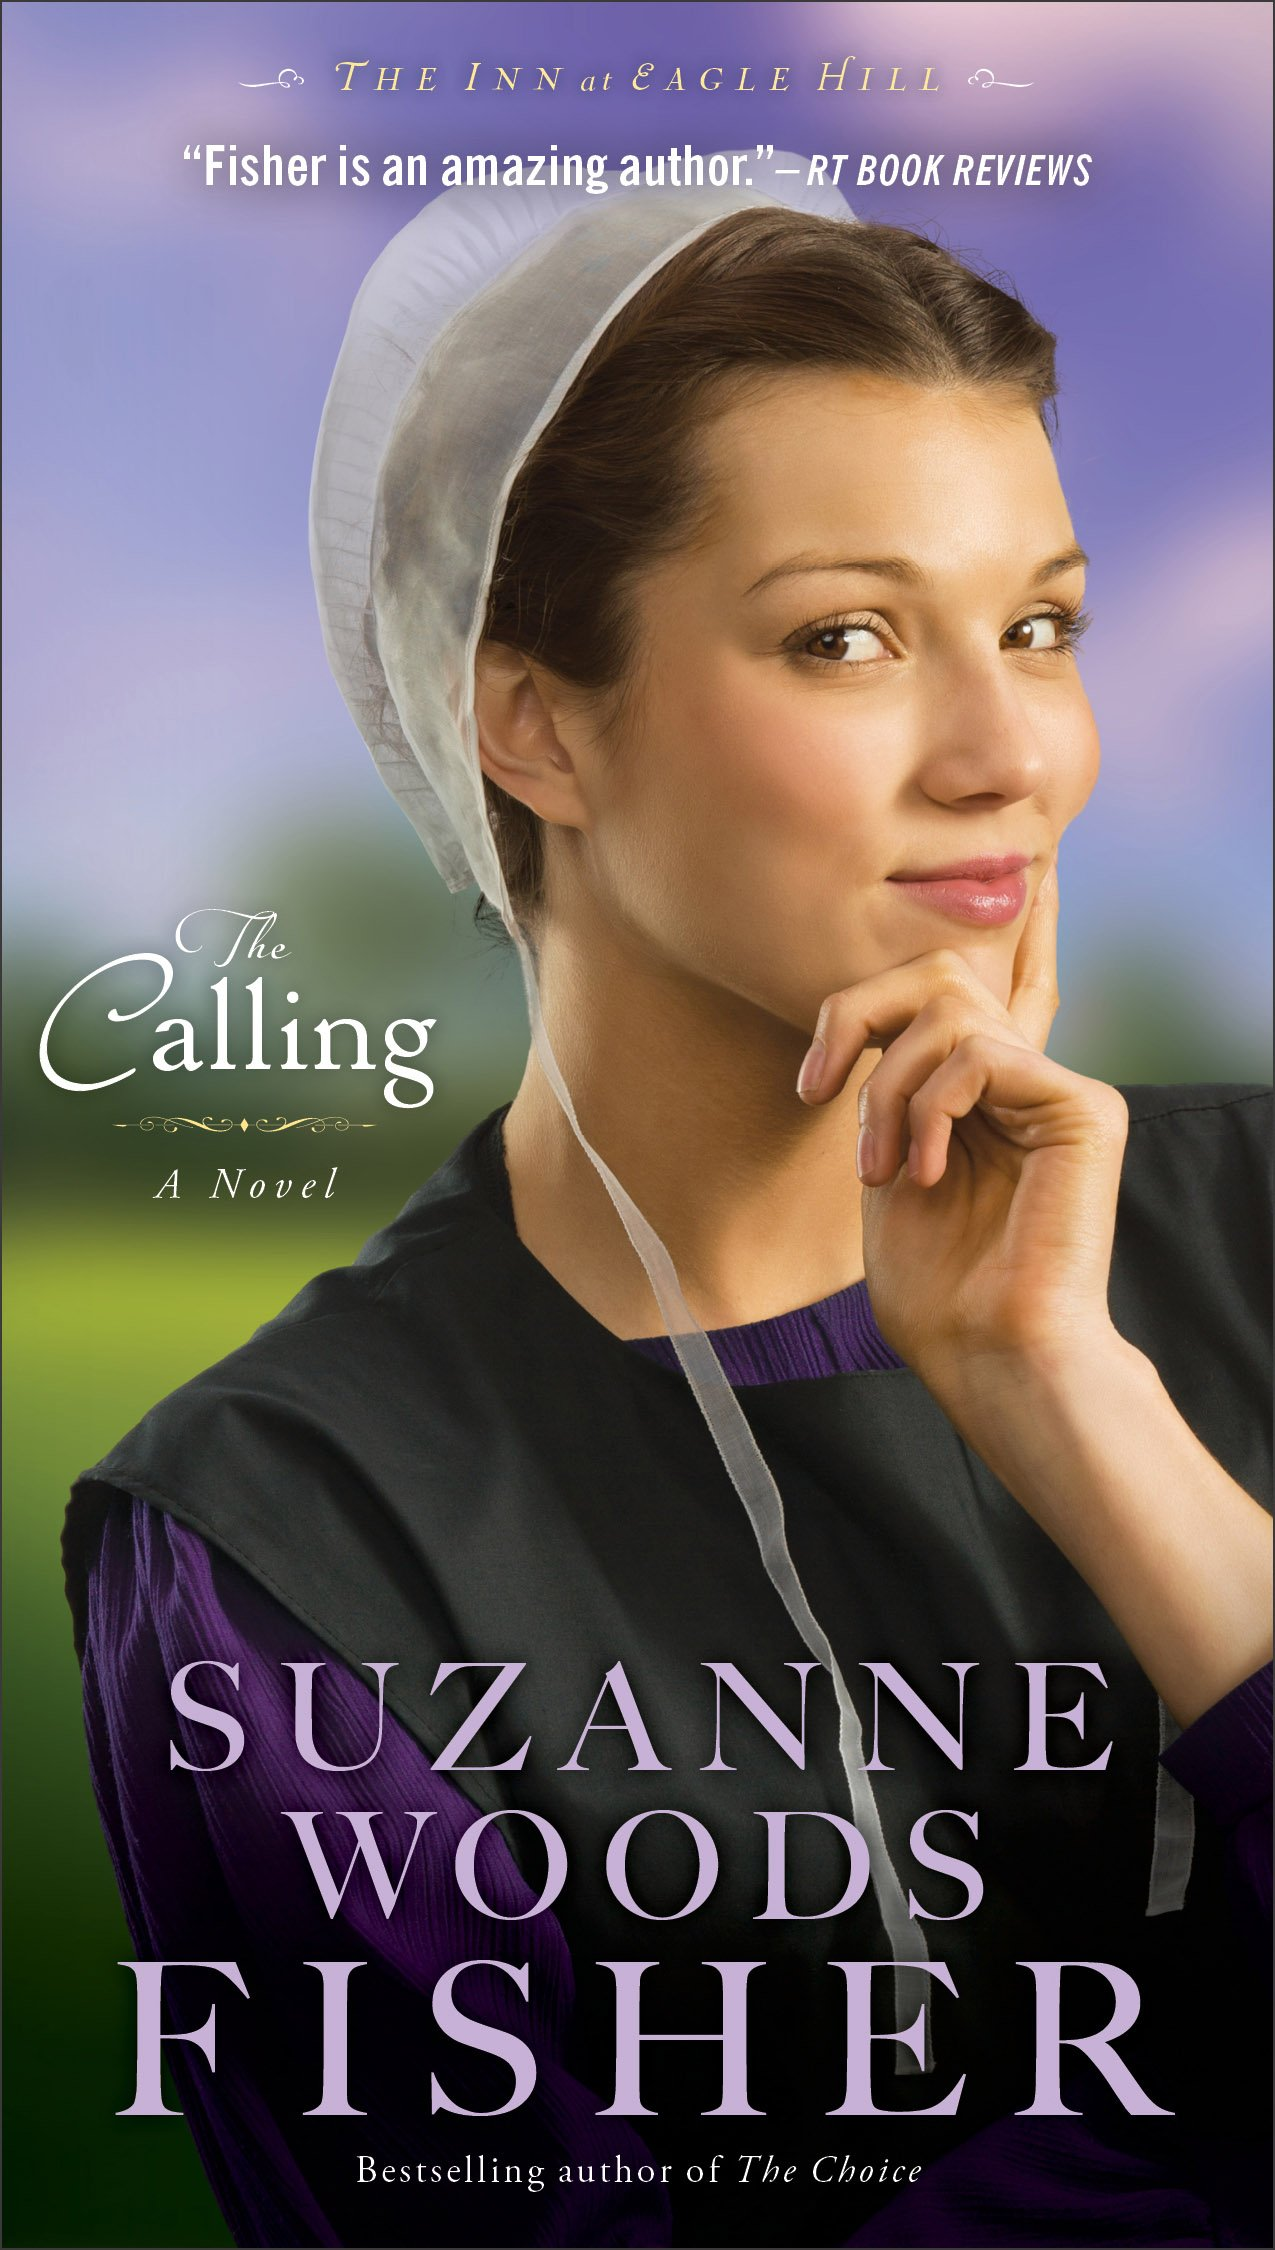 The Calling: A Novel (The Inn at Eagle Hill)